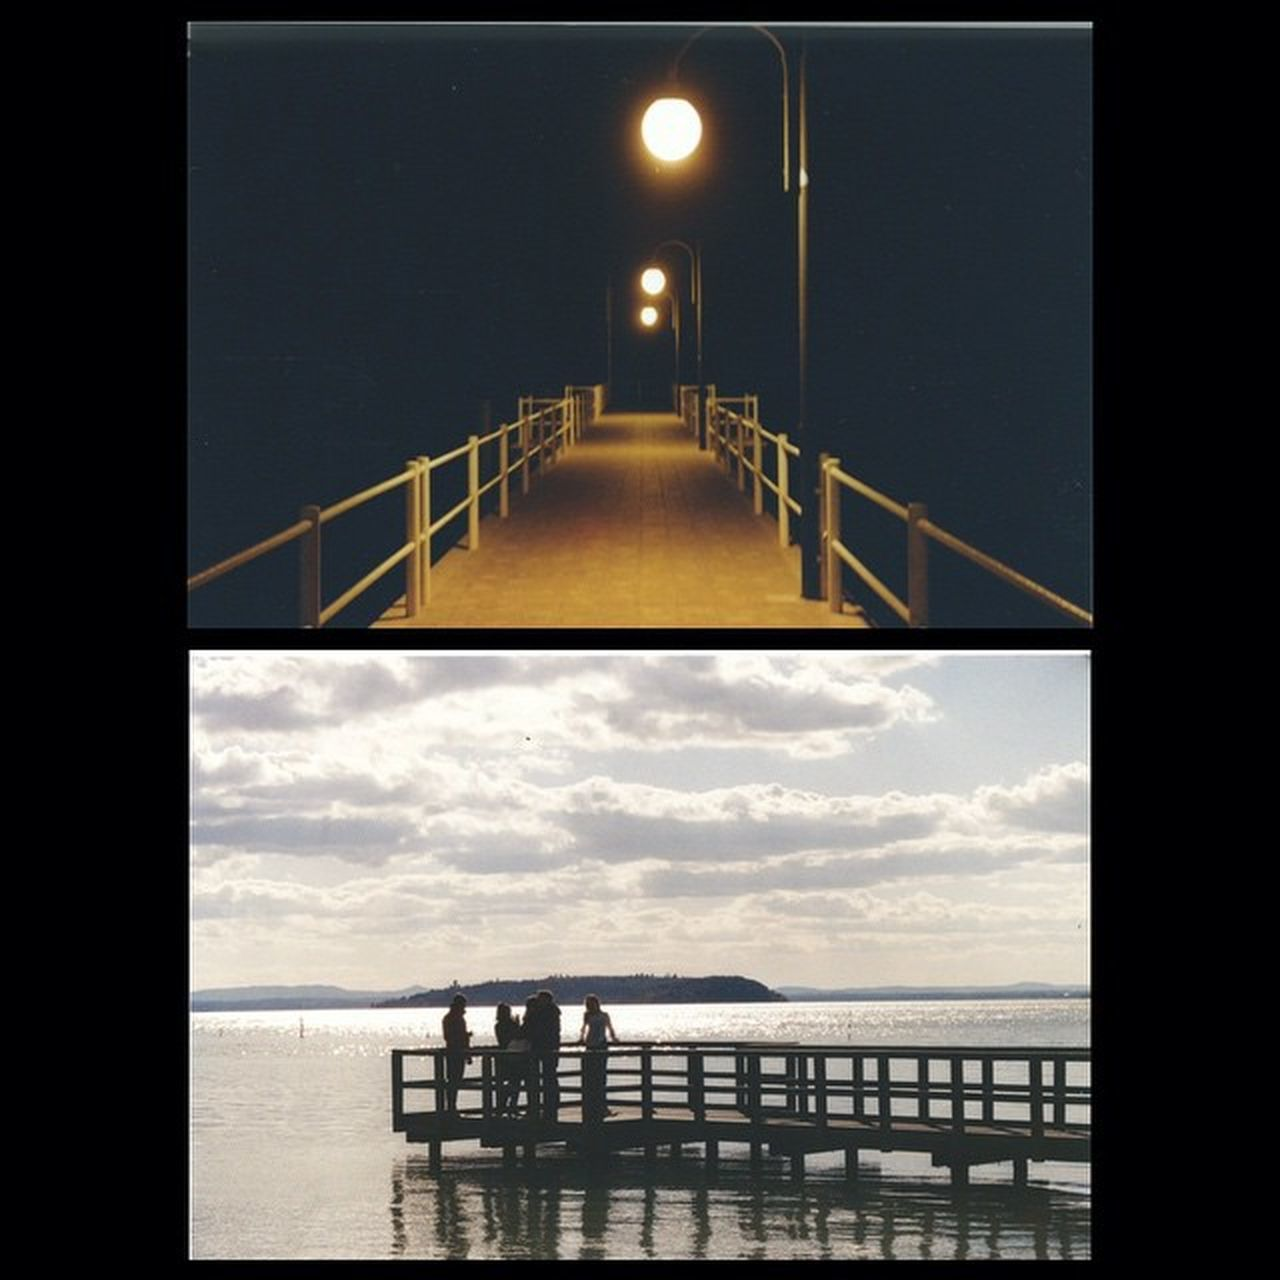 sea, railing, bridge - man made structure, built structure, sky, water, architecture, no people, horizon over water, outdoors, illuminated, night, nature